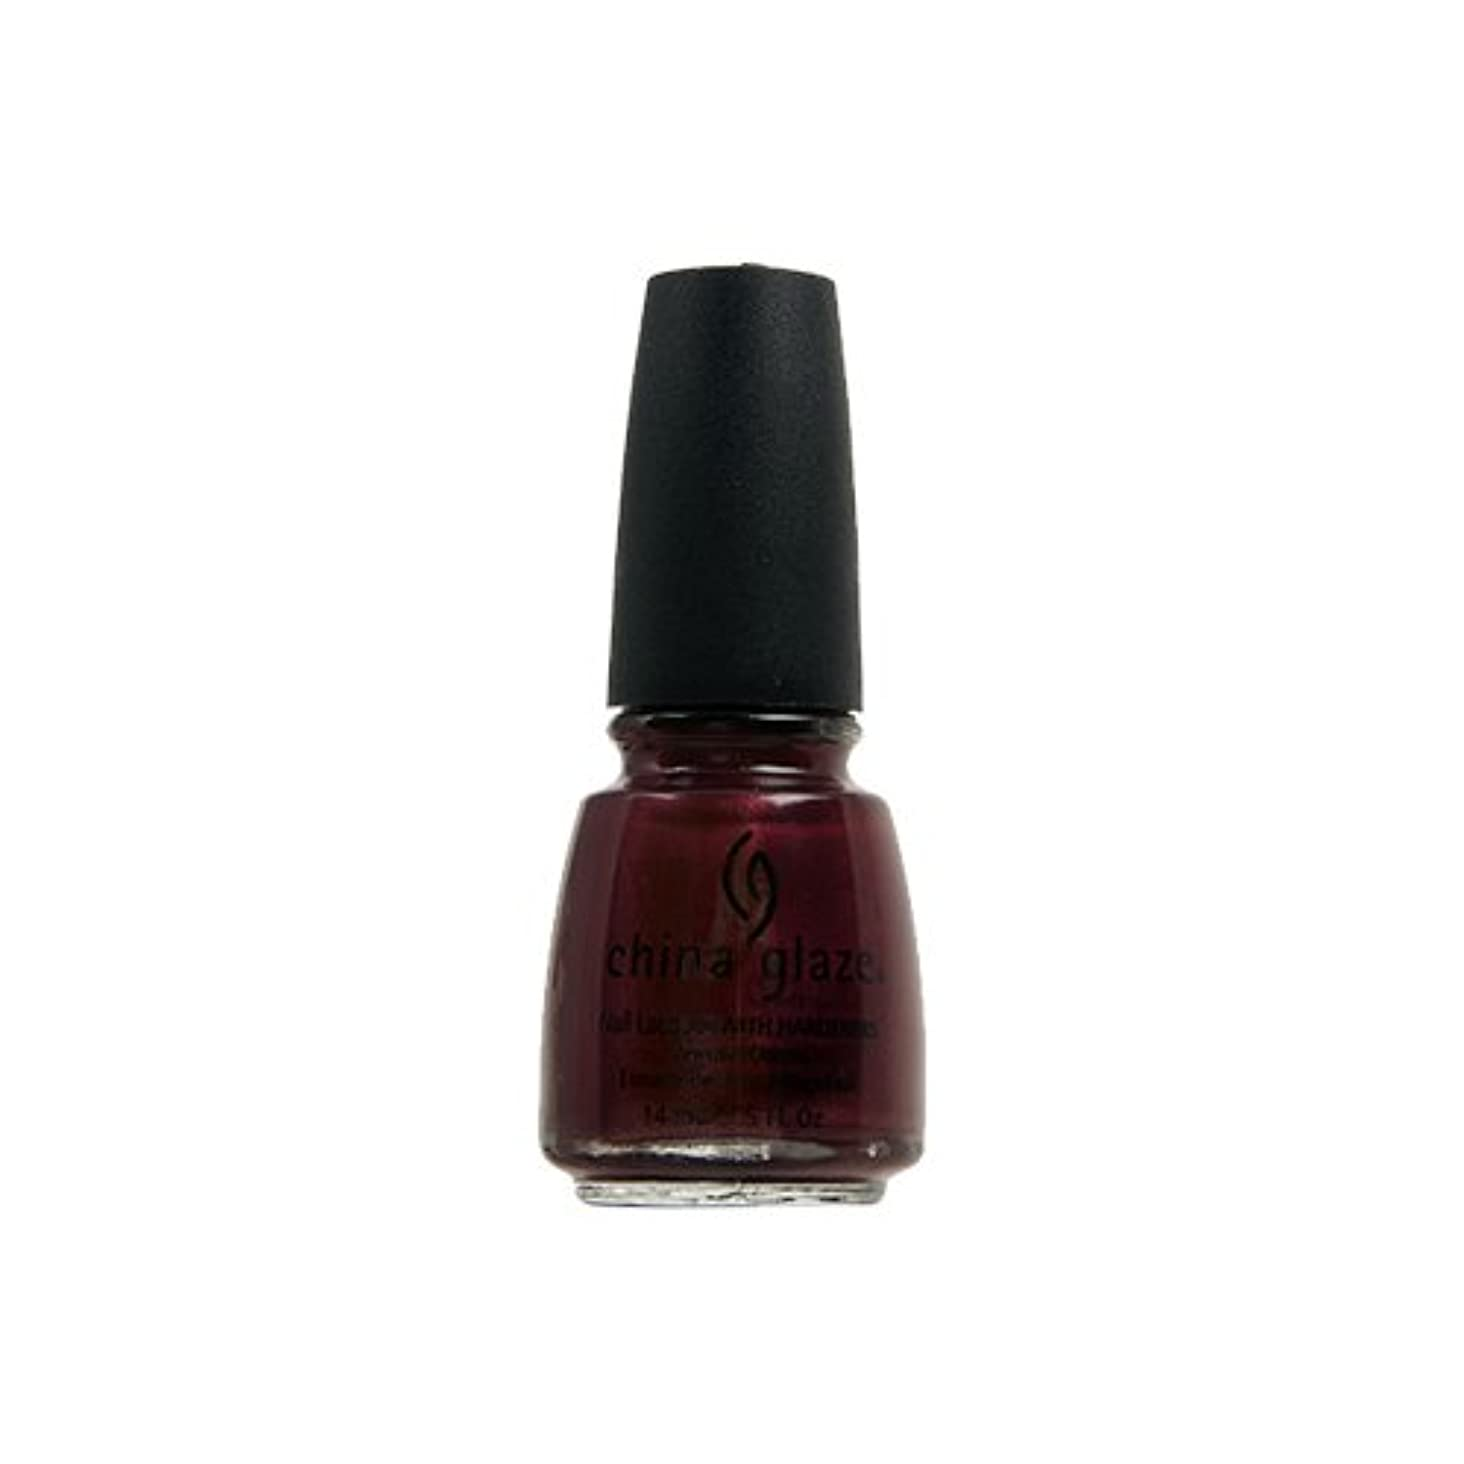 ハシー爪パイChina Glaze Nail Lacquer 087 Long Kiss 70257 (並行輸入品)